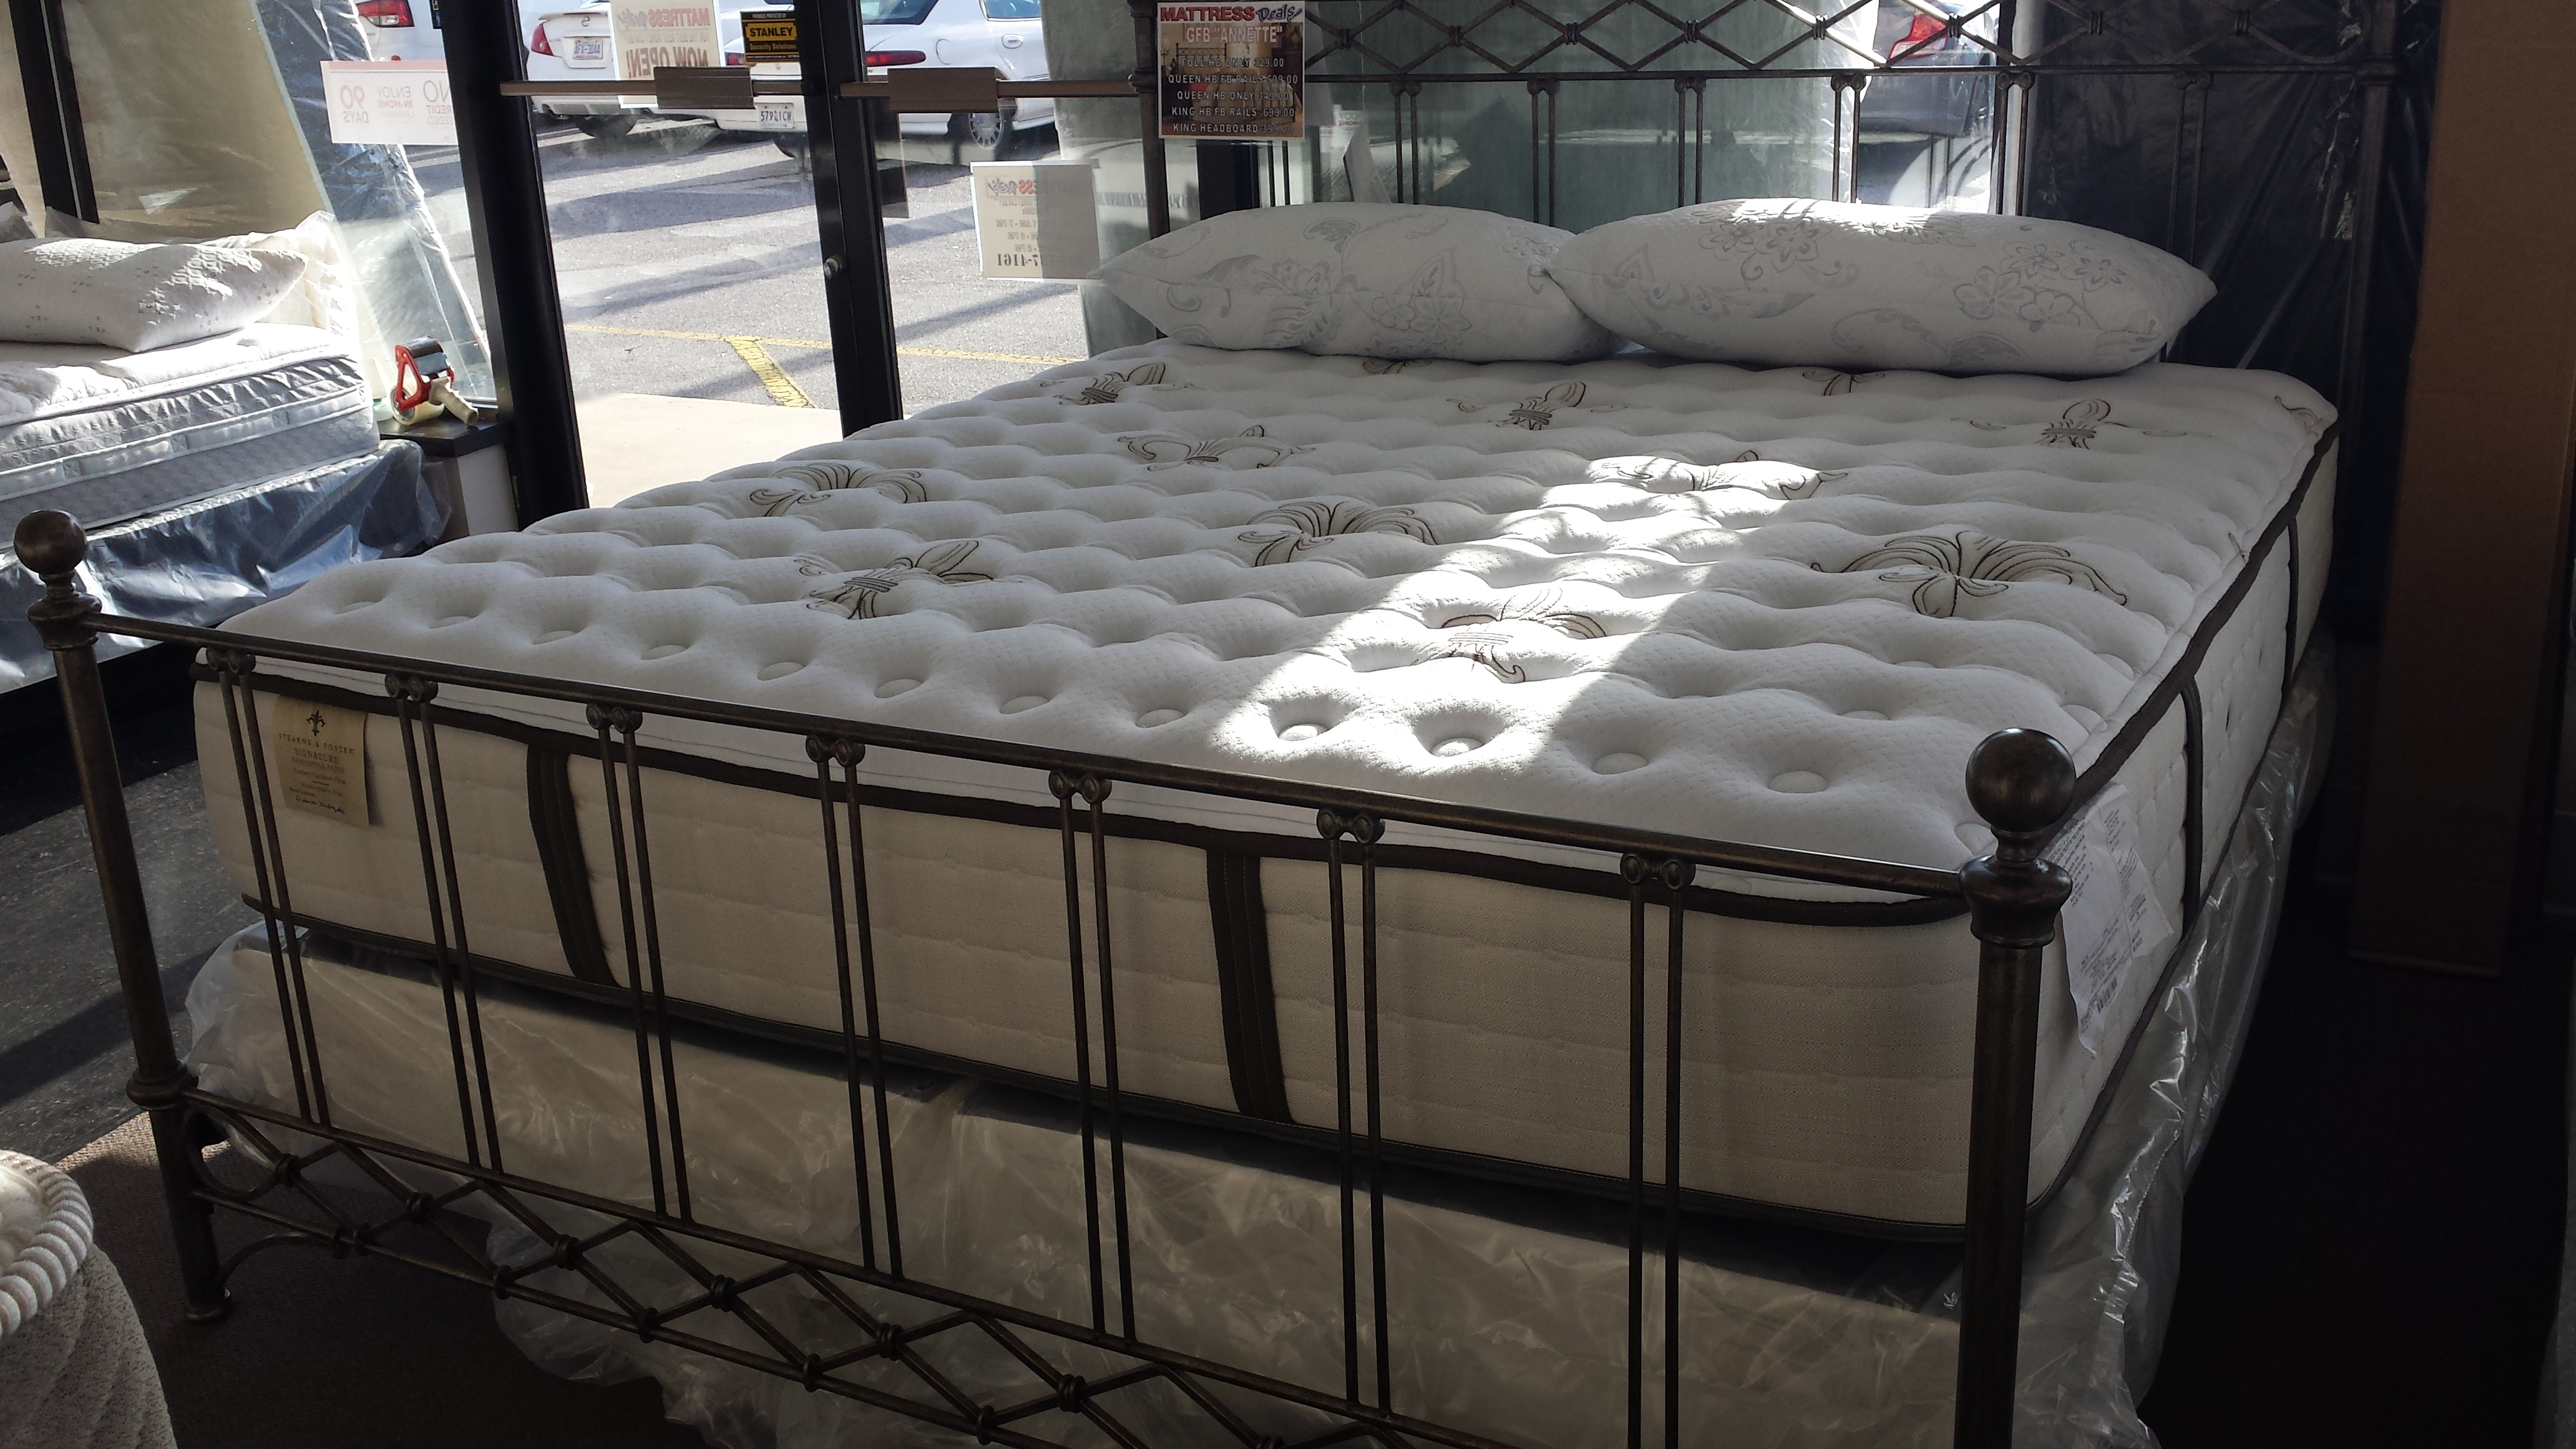 Mattress Deals image 59